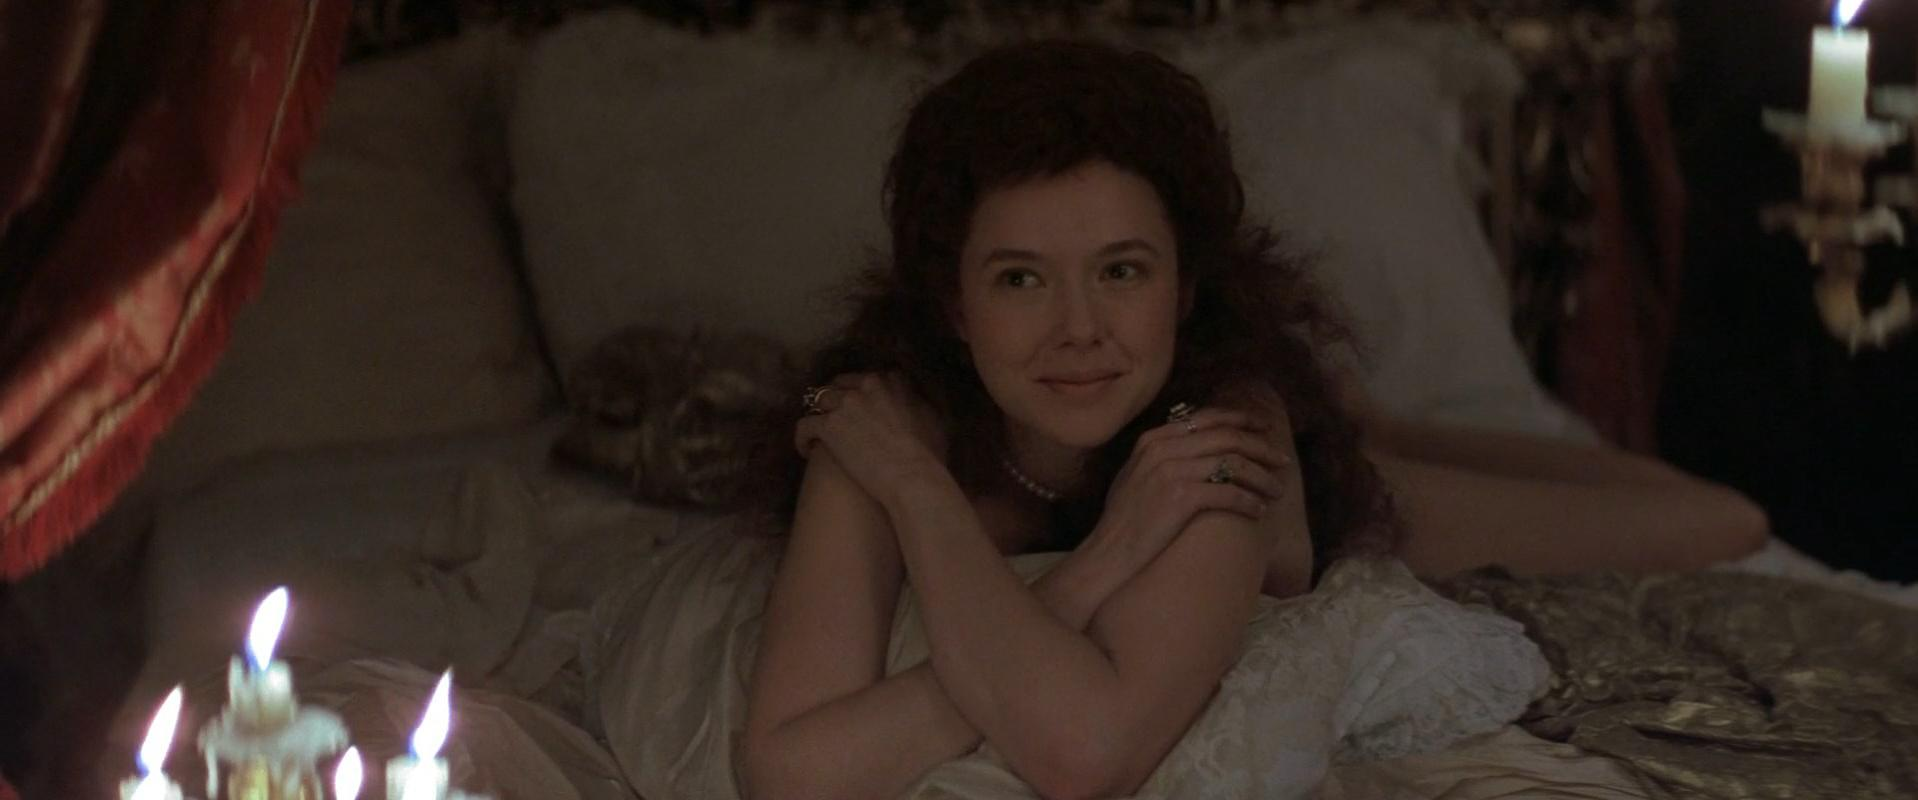 Annette Bening nude - Valmont (1989)